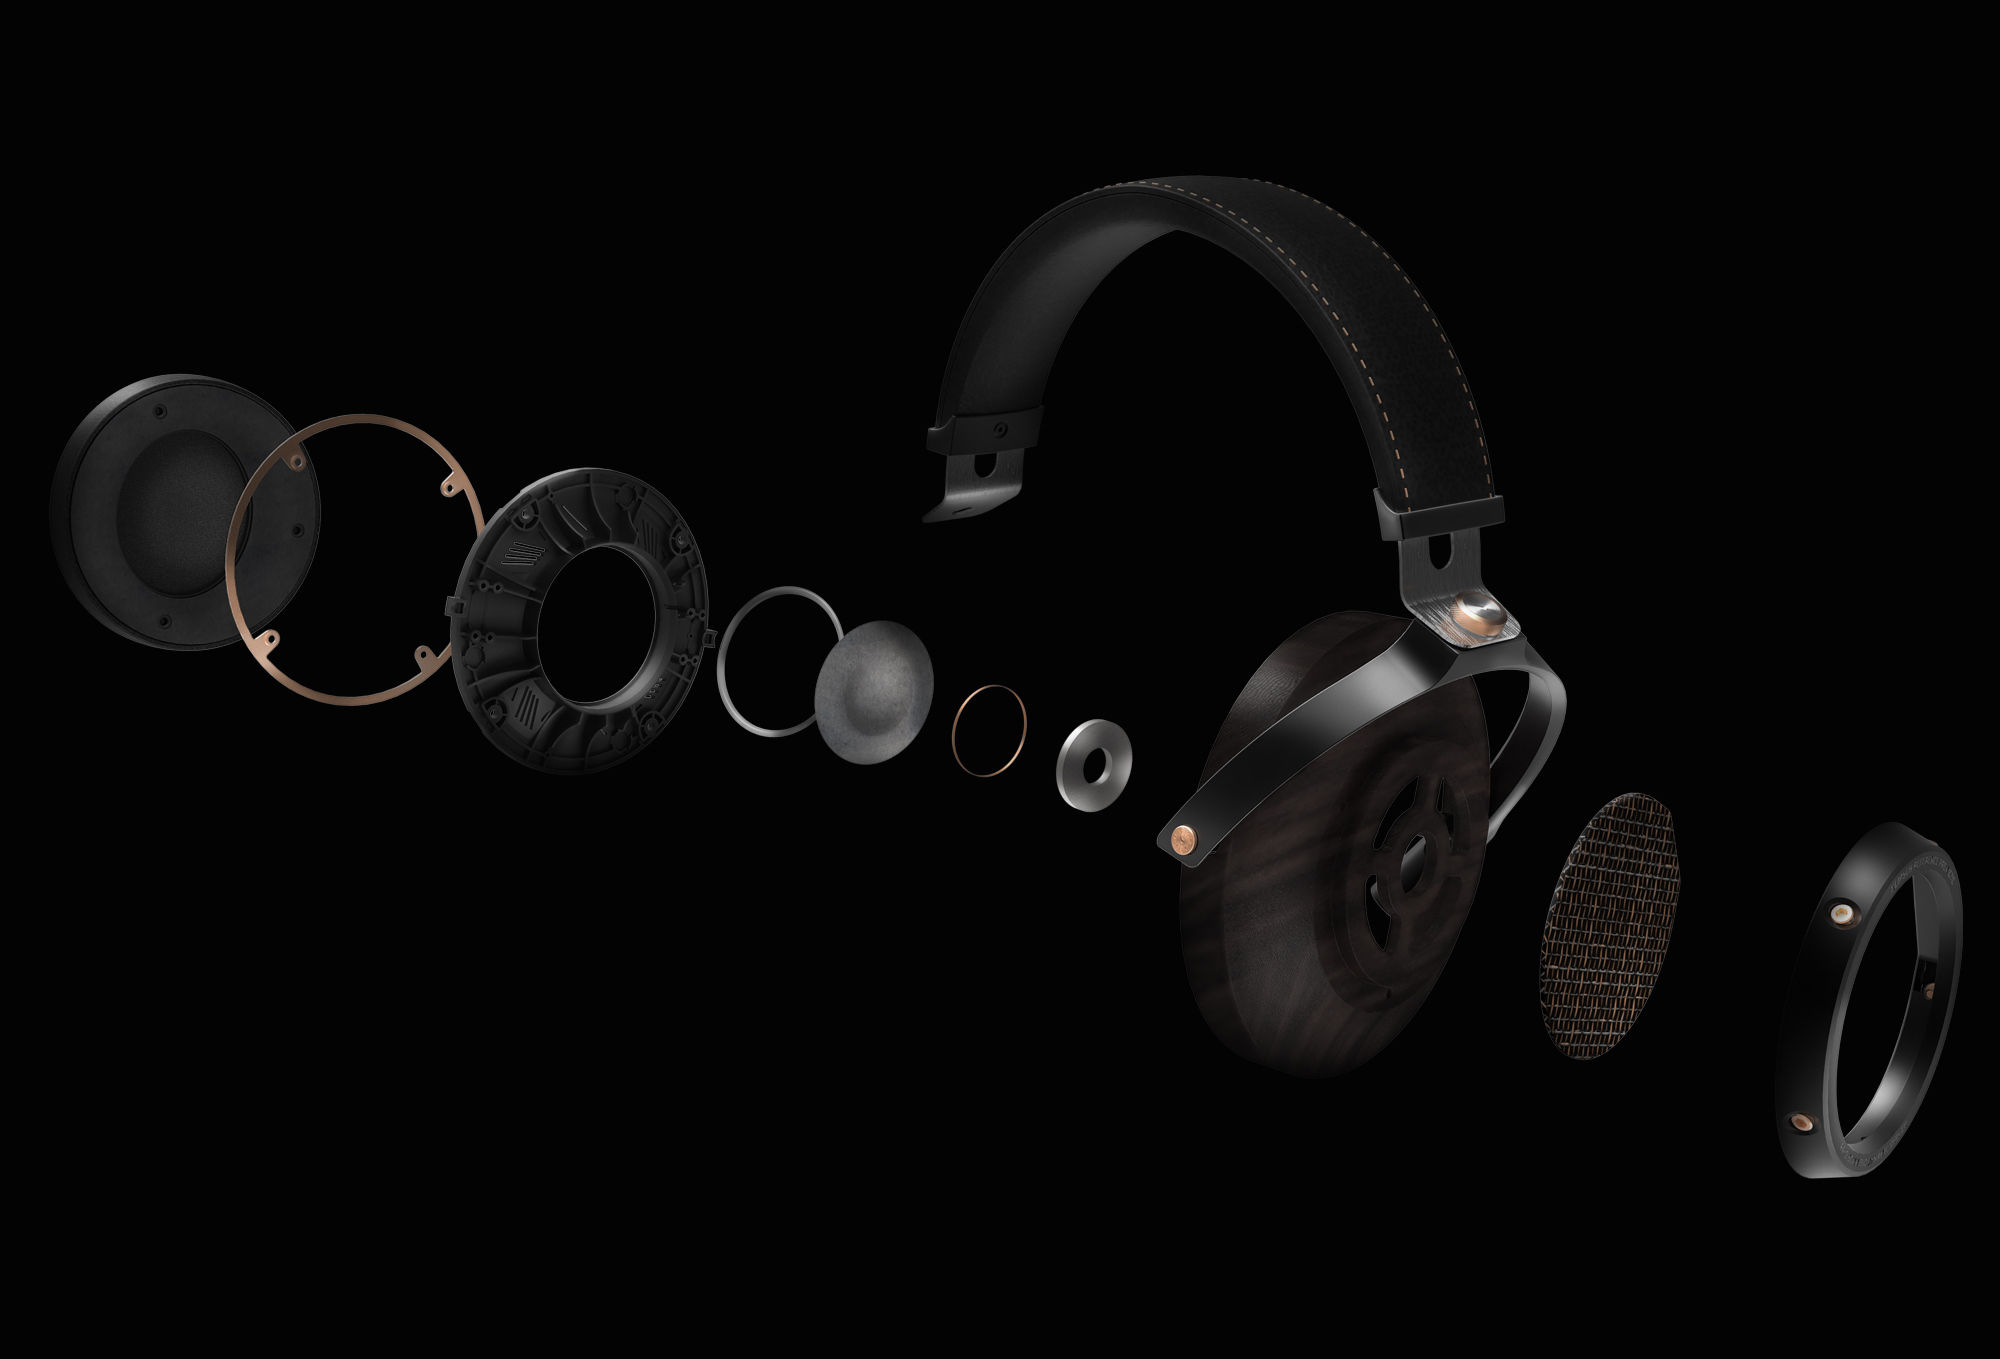 Exploded view of Klipsch HP-3 headphones showing inside details